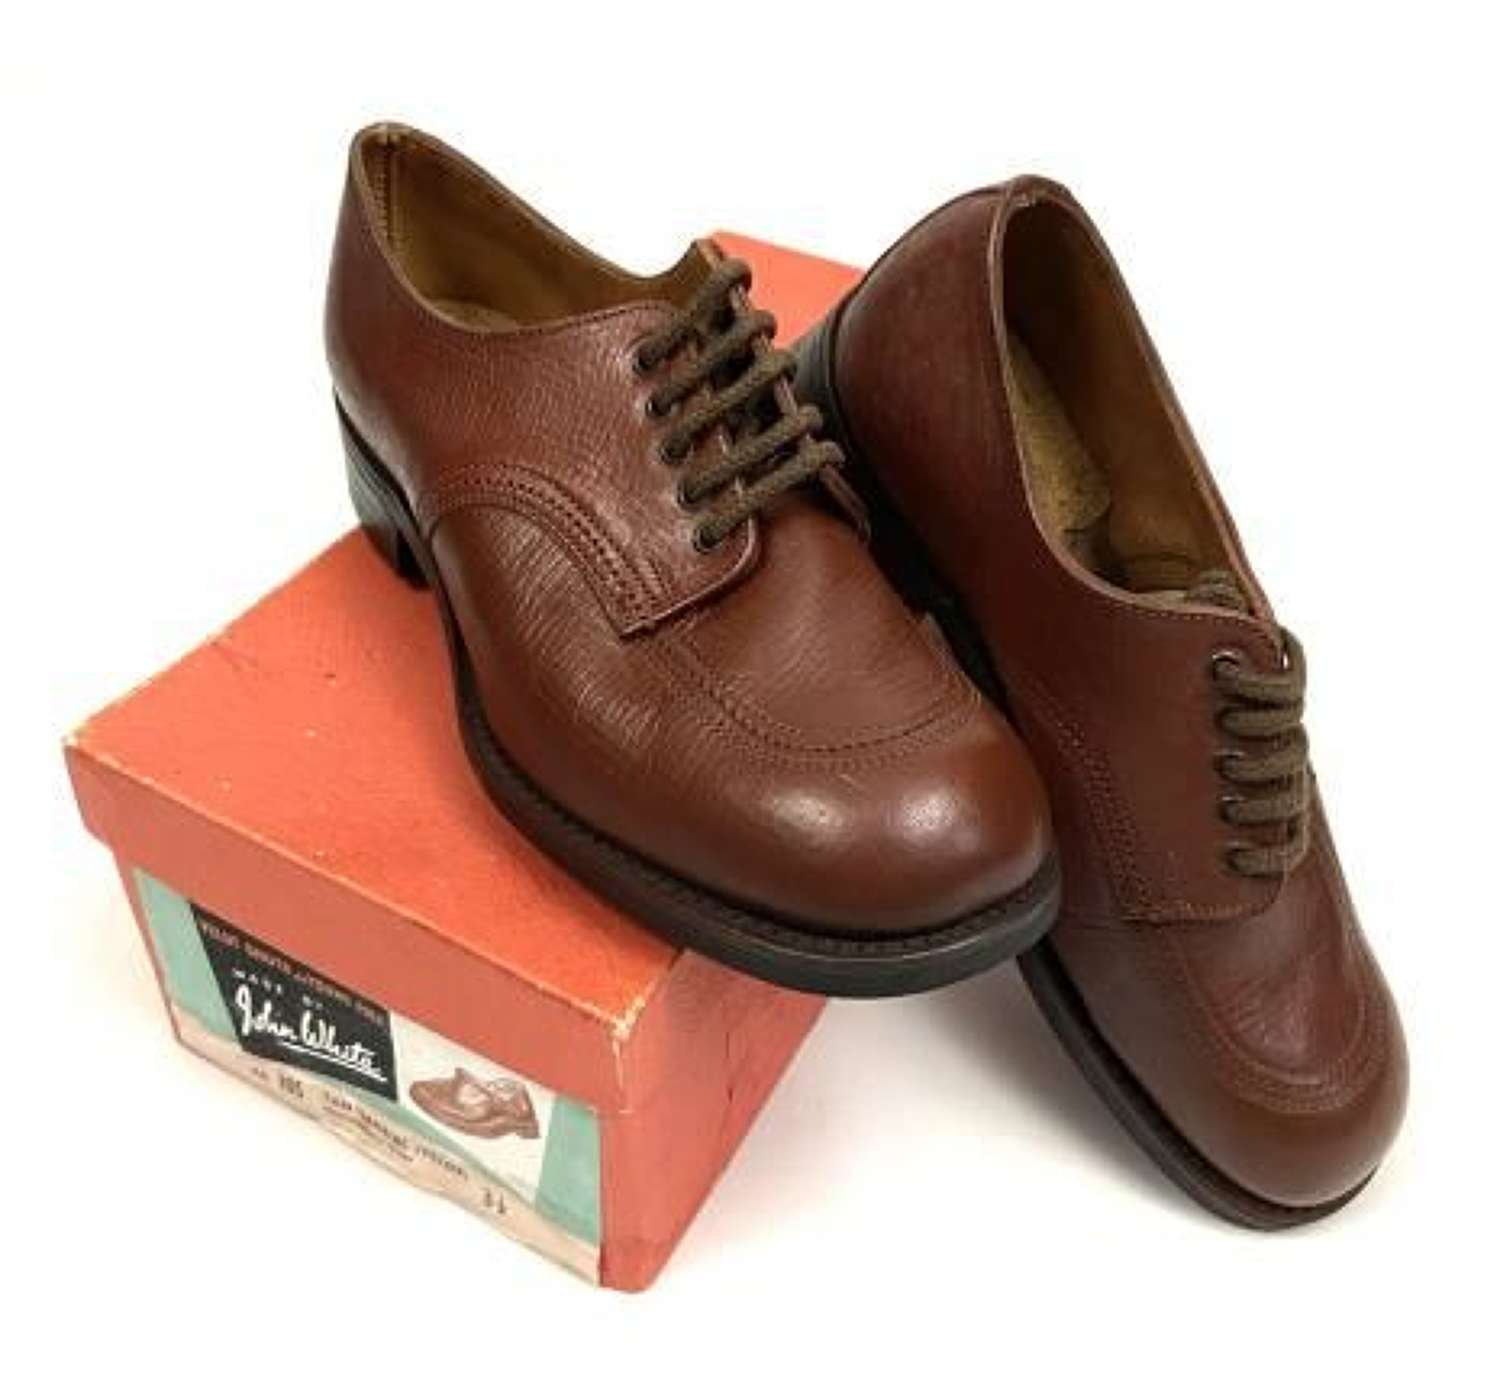 Original WW2 Auxiliary Territorial Services Officers CC41 Brown Leather Shoes